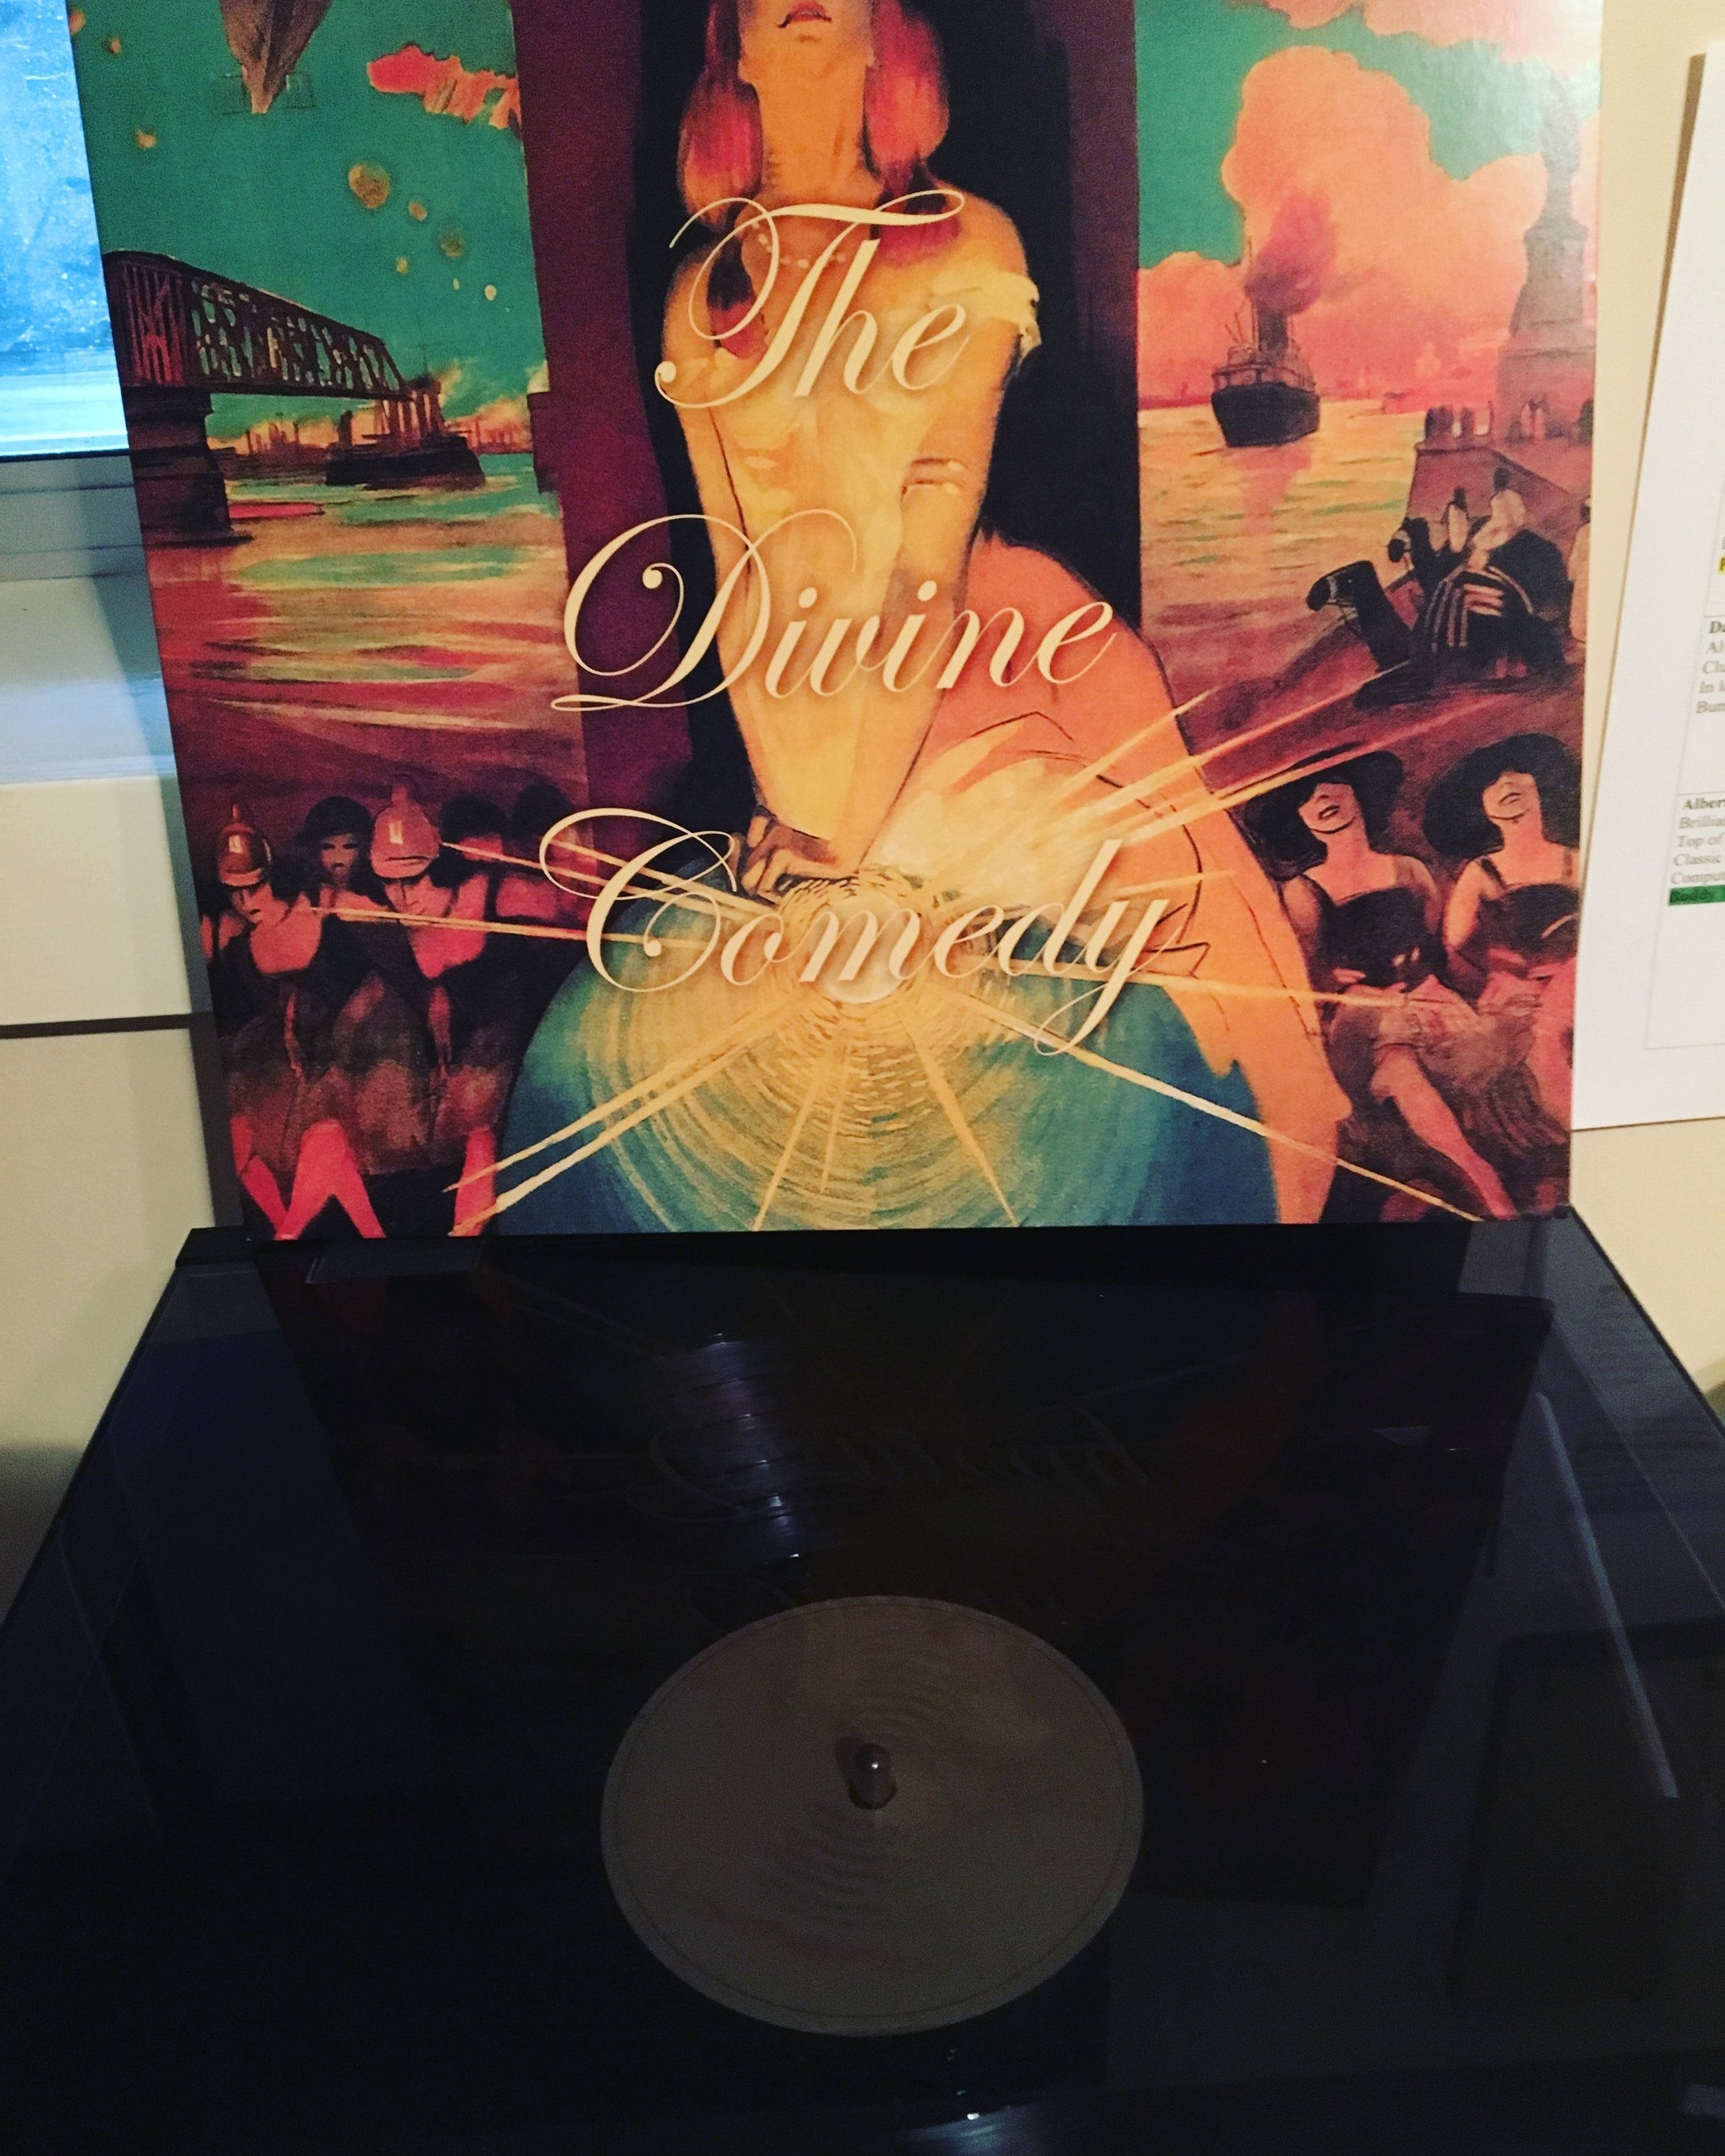 My favourite album of 2016: 'Foreverland' by The Divine Comedy.  There's really not a huge point to this post. I've been slack updating the blog and wanted to share something simple. And put simply, music is once again bringing me joy.  What's bringing you joy at the moment?  Tim